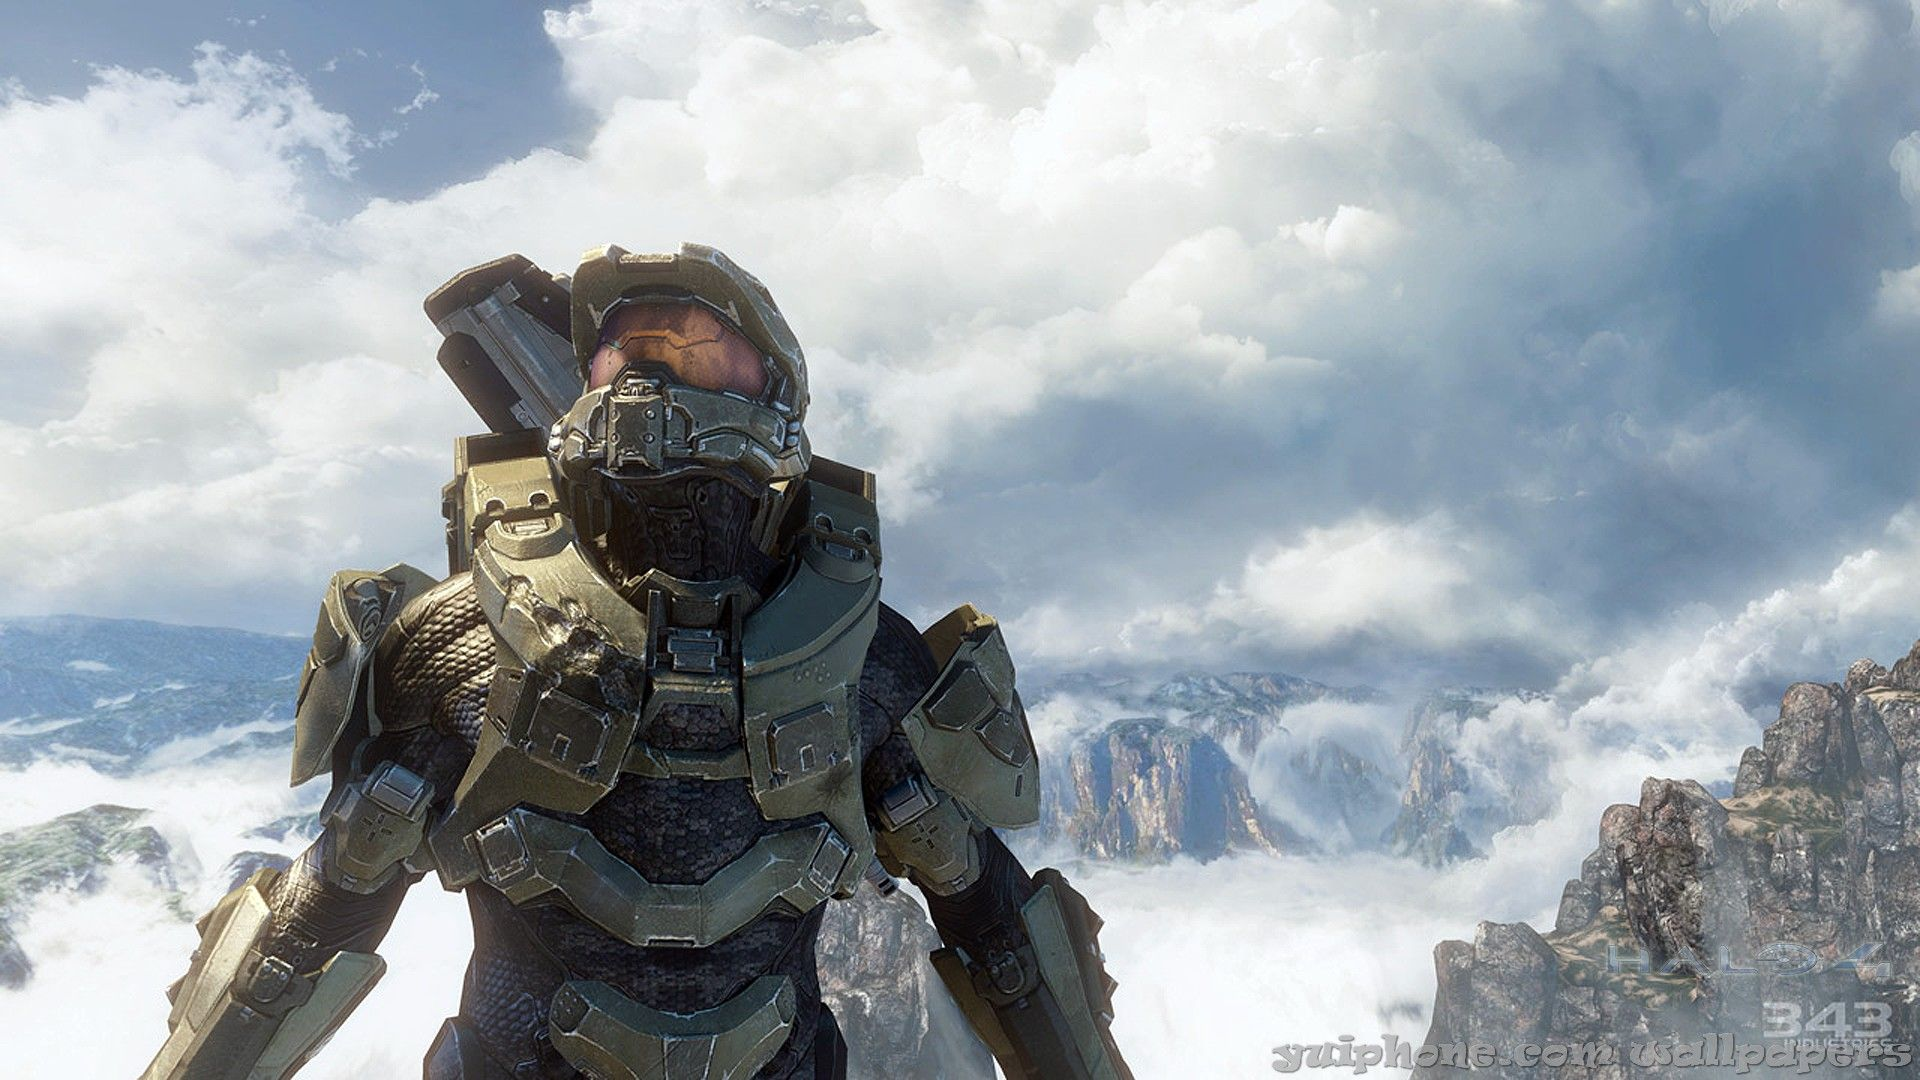 Master Chief 4K Wallpapers - Top Free Master Chief 4K ...